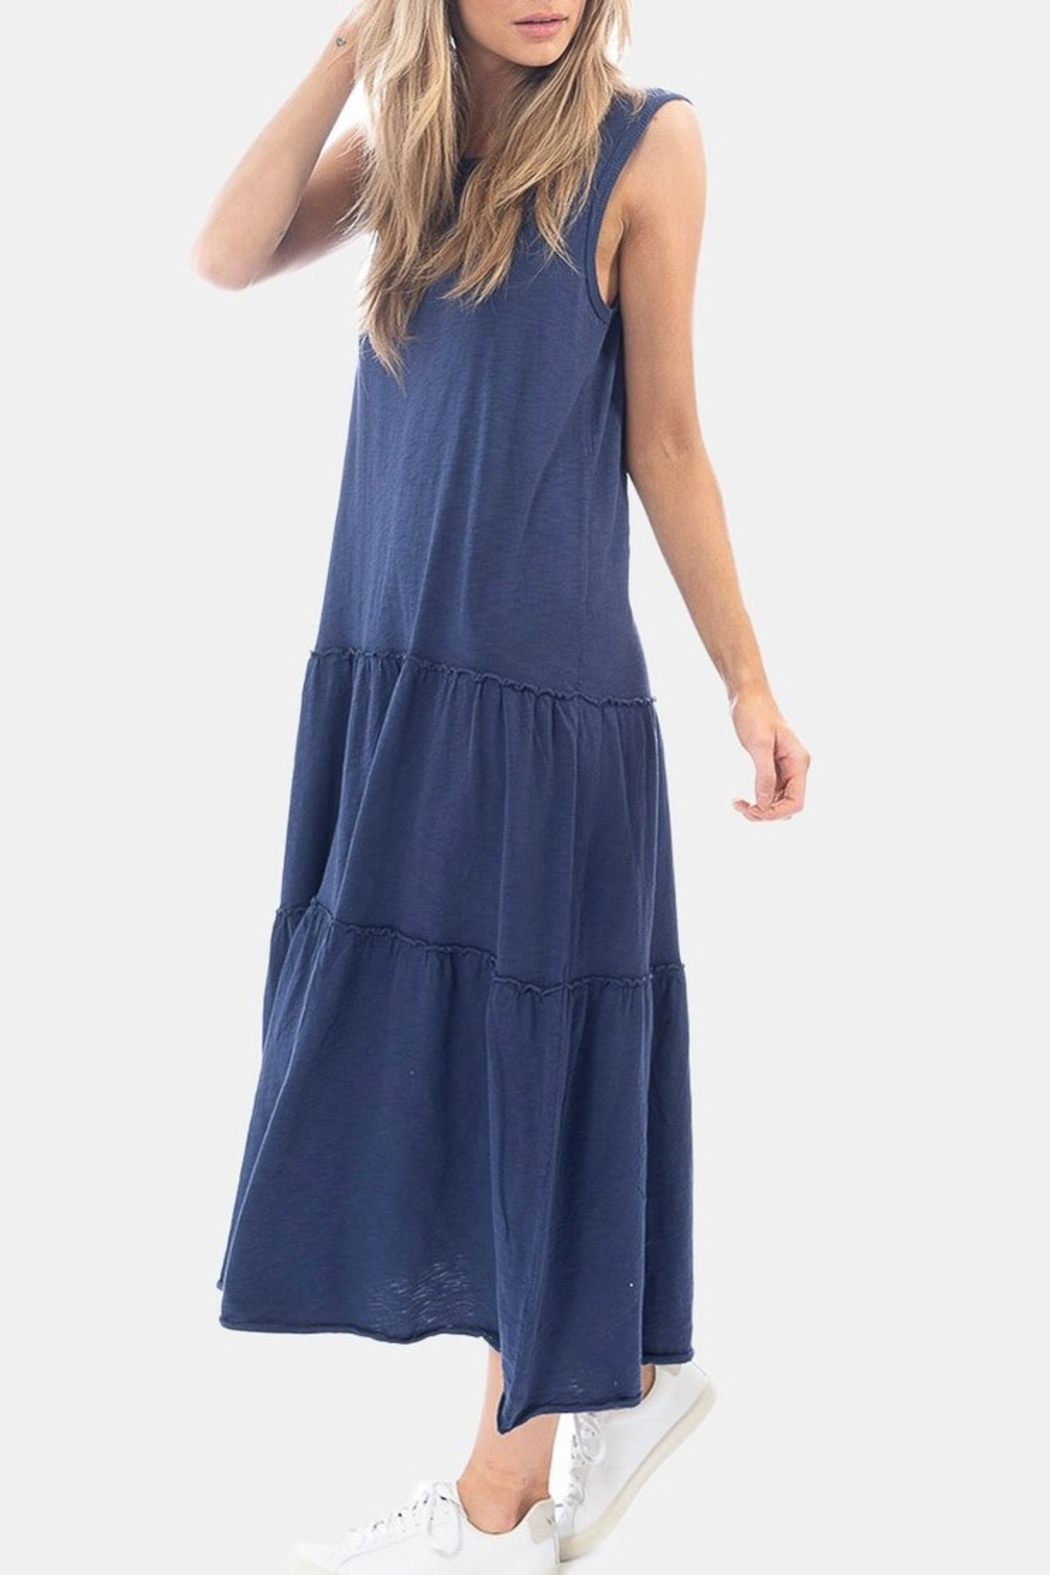 Dylan by True Grit Tiered Crew Dress - Front Full Image